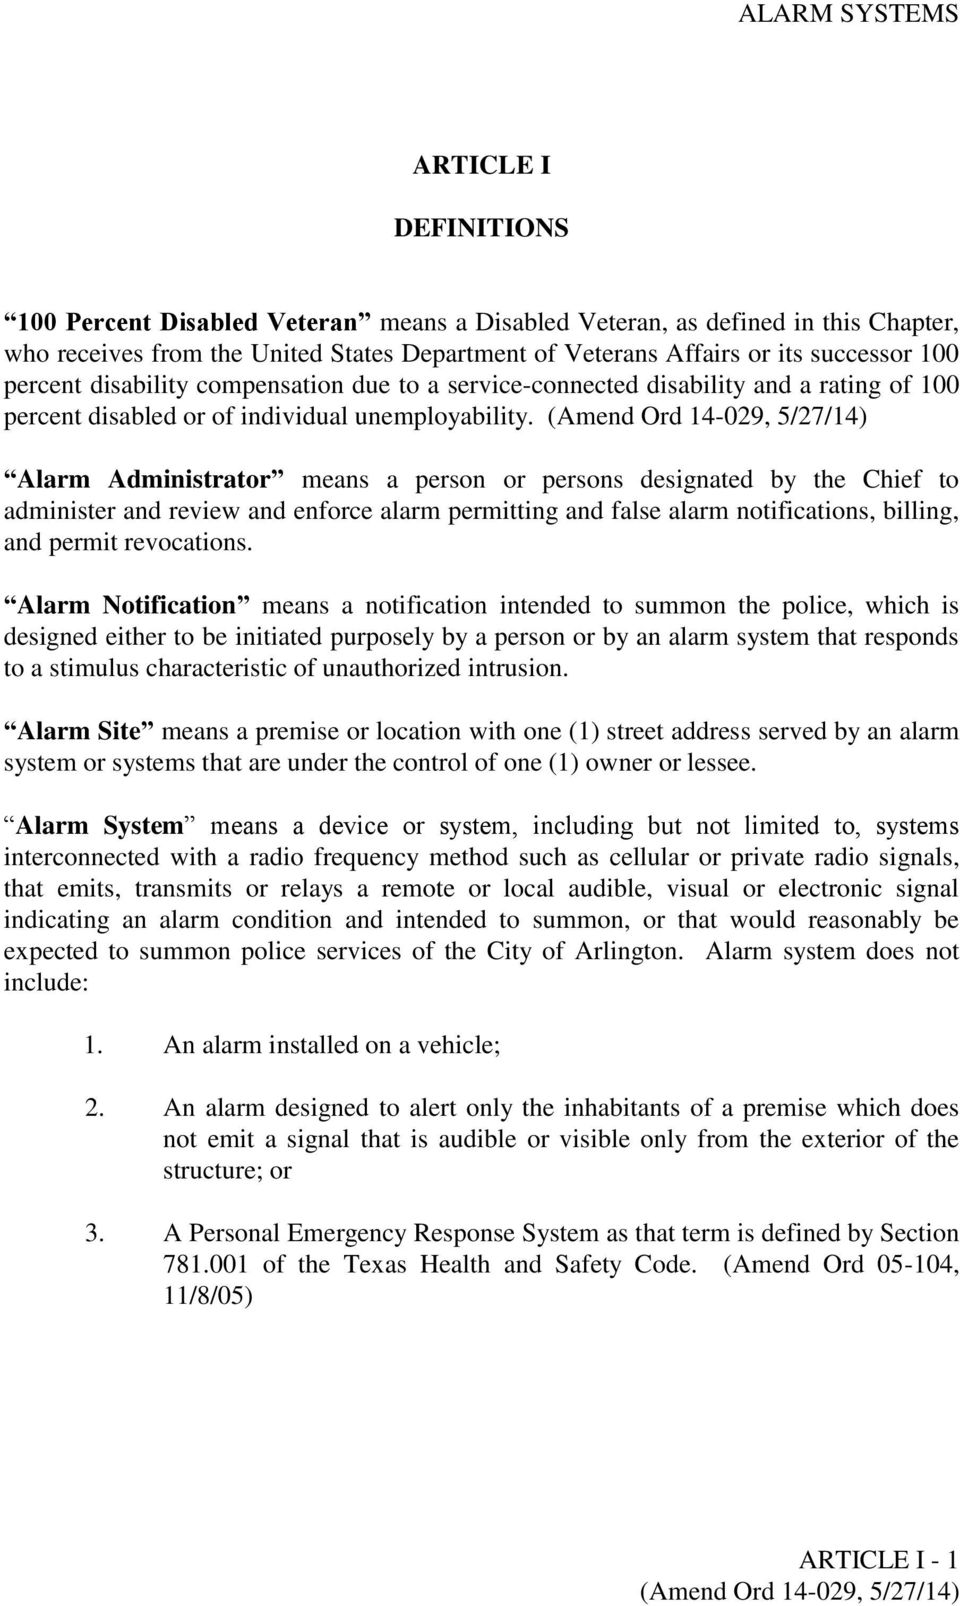 (Amend Ord 14-029, 5/27/14) Alarm Administrator means a person or persons designated by the Chief to administer and review and enforce alarm permitting and false alarm notifications, billing, and